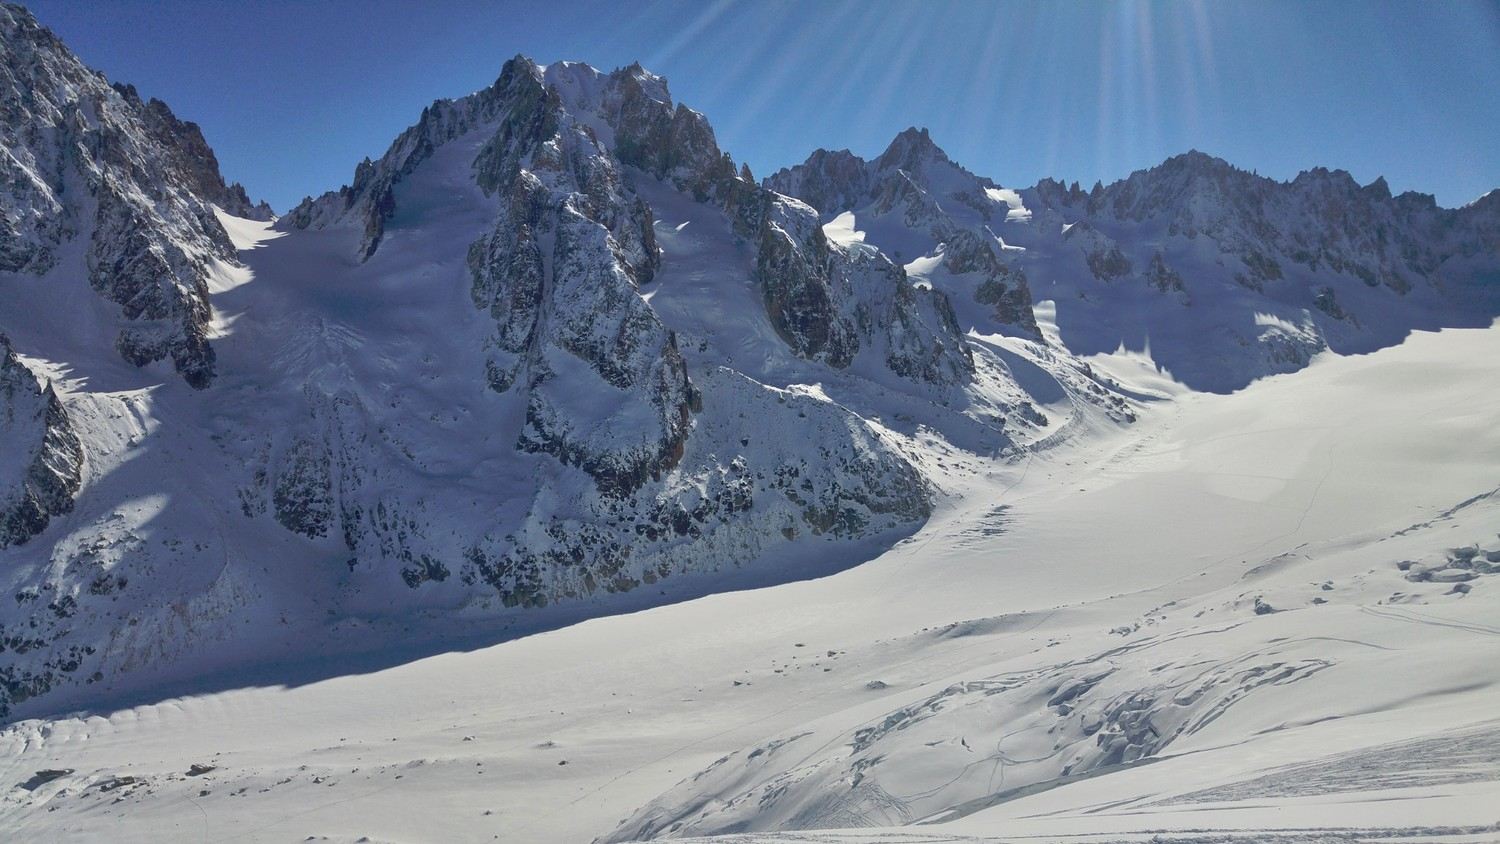 View over the Glacier d'Argentiere valley. Lots of fresh snow and the glacier not yet tracked. Rare view in April